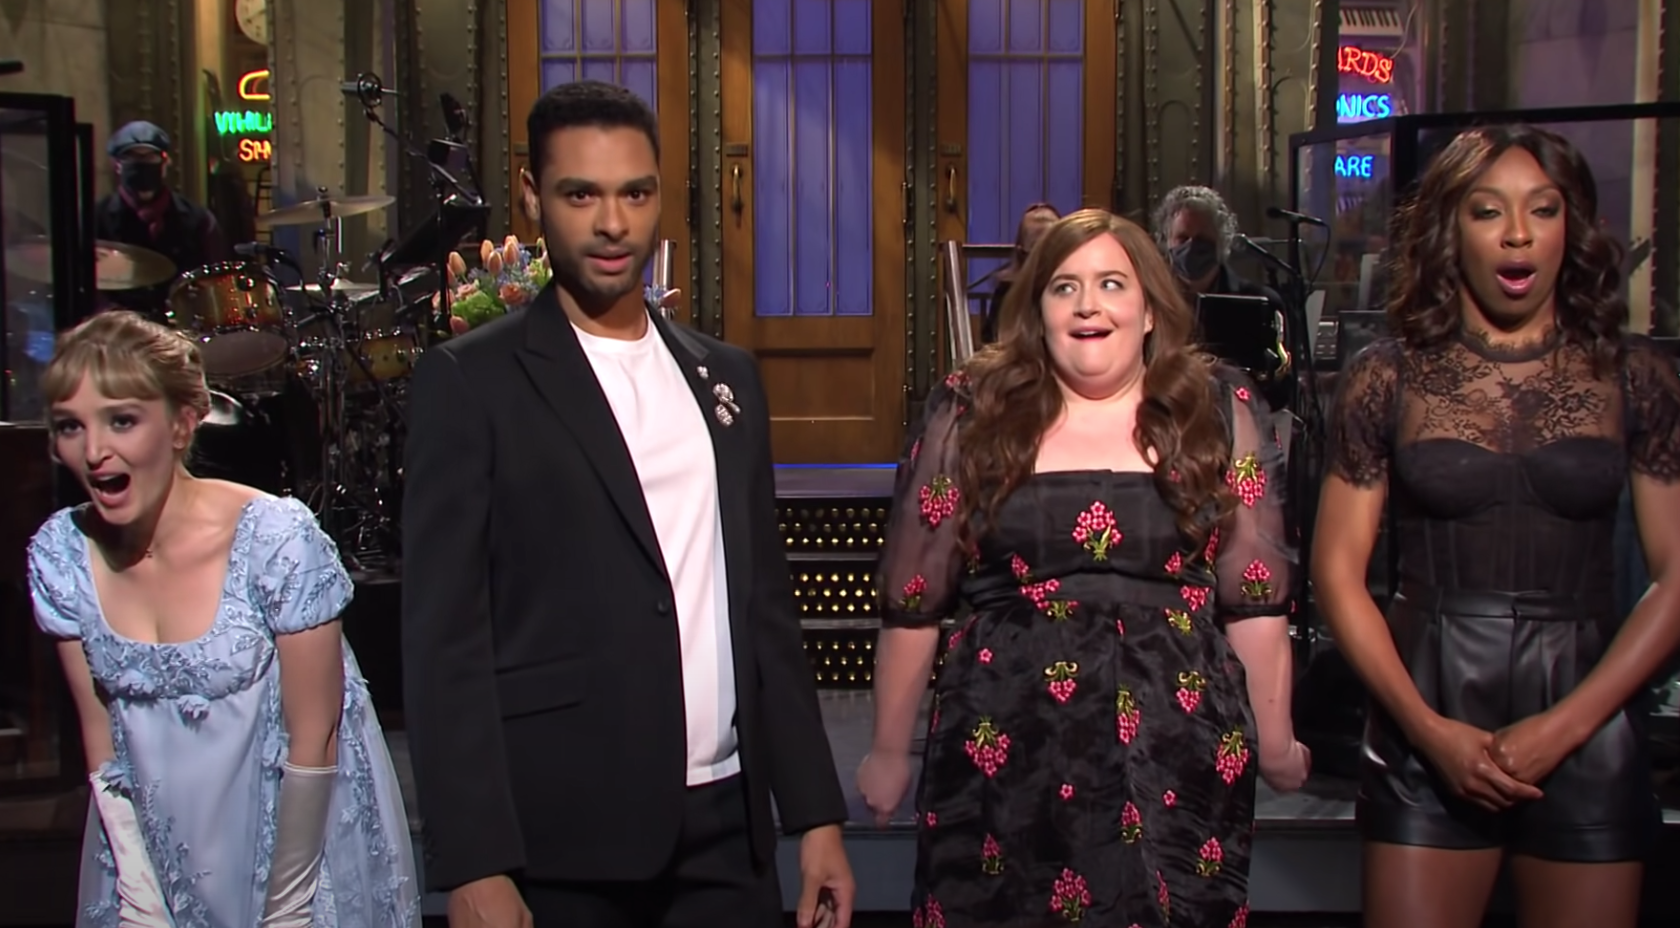 Three of SNL's female cast members gasping